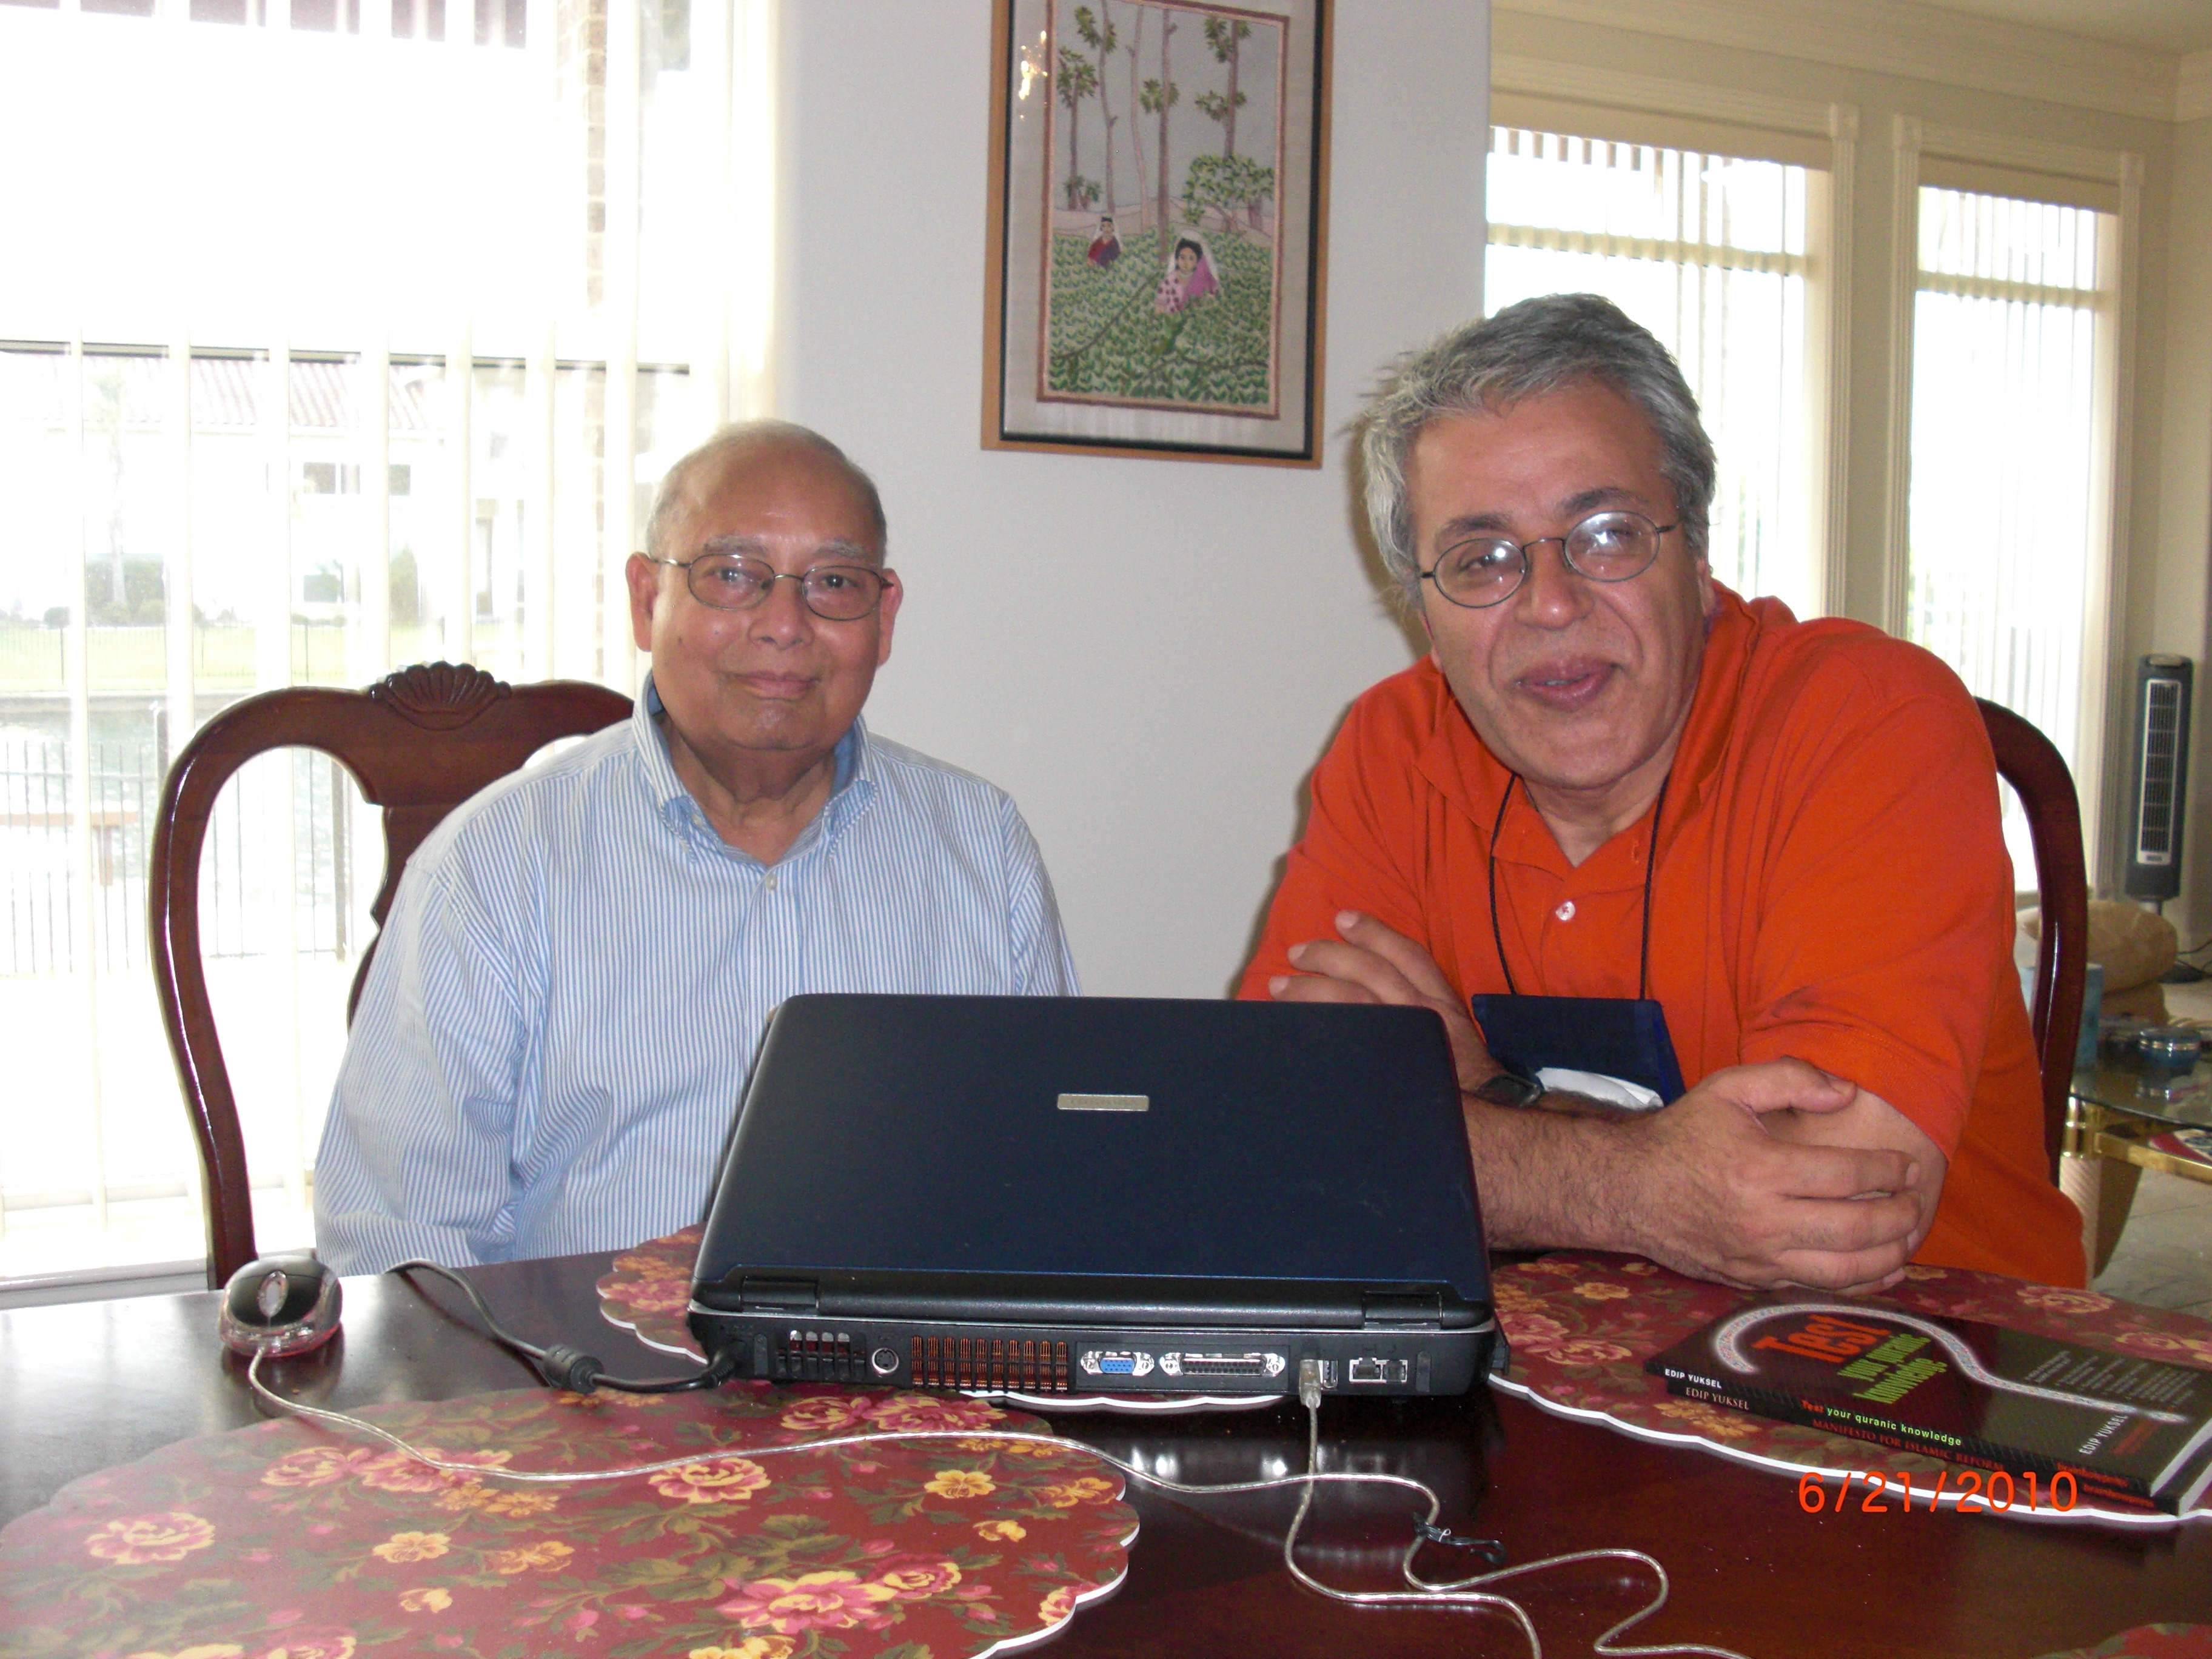 2010 at Abdur Rab's Home in Houston